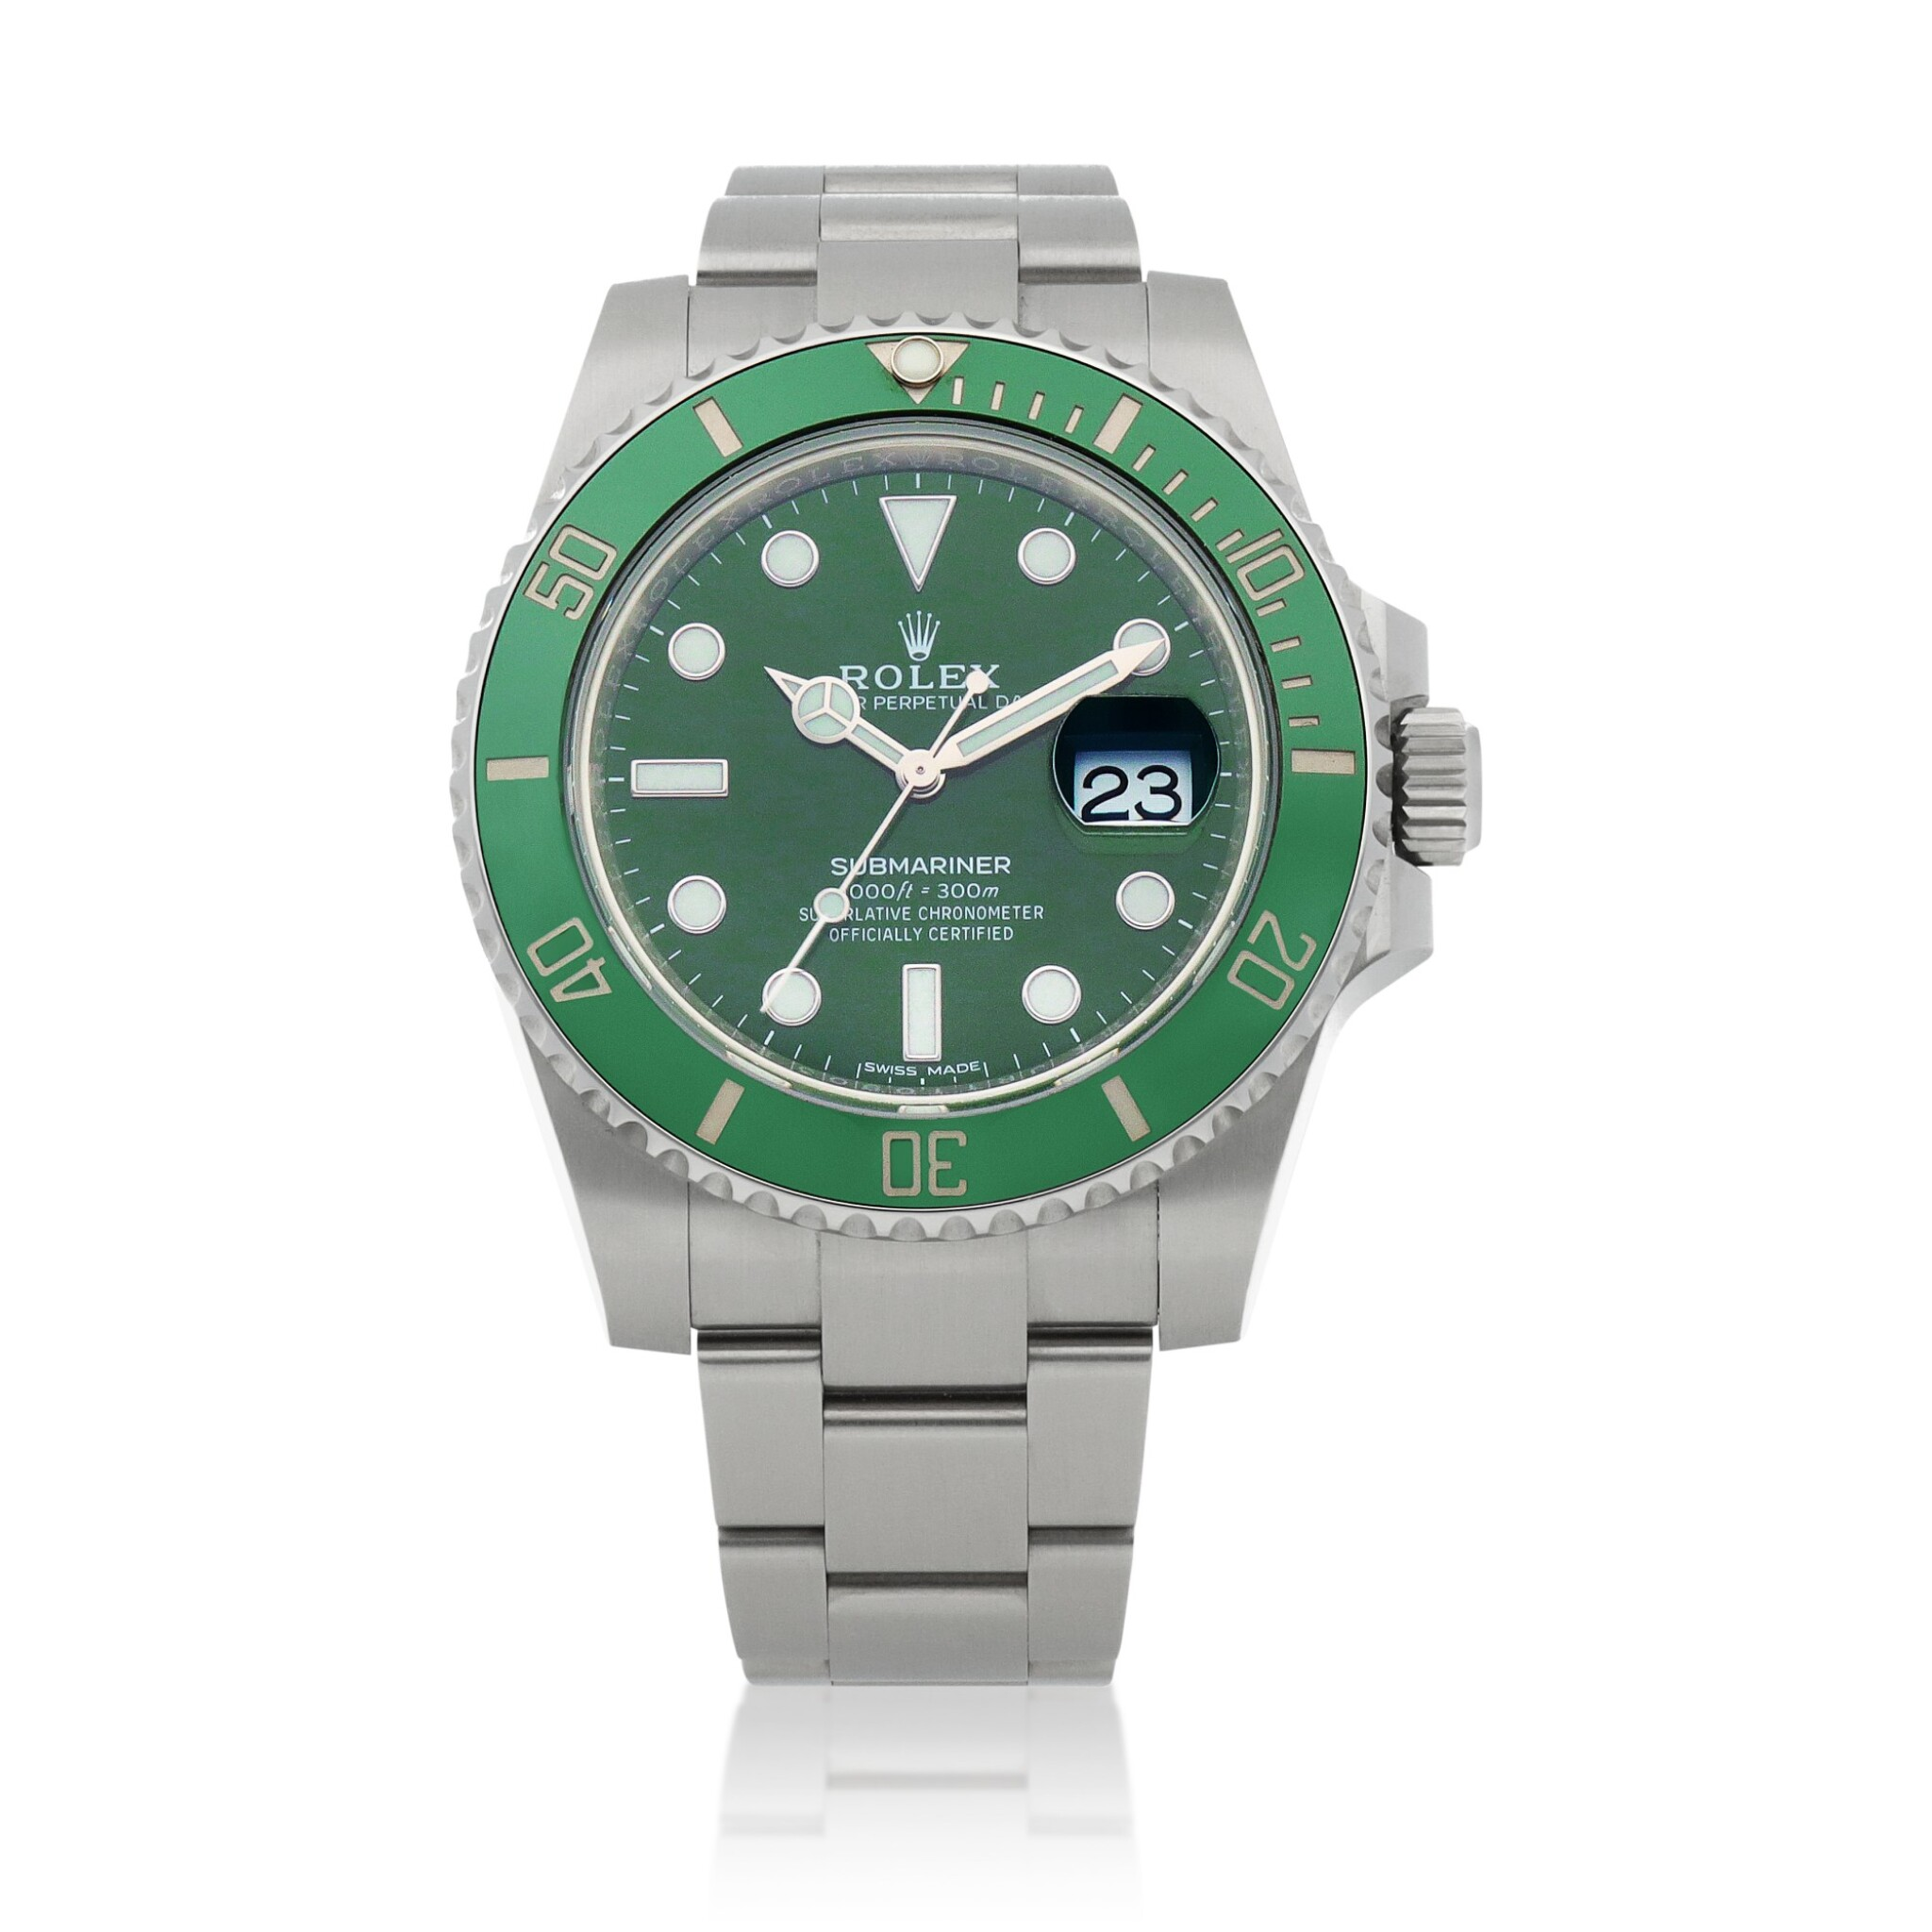 View full screen - View 1 of Lot 6. Retailed by Bucherer: 'Hulk' Submariner, Ref. 116610LV Stainless steel wristwatch with date and bracelet Circa 2020 | 勞力士| 零售商為Bucherer:116610LV型號「'Hulk' Submariner」精鋼鍊帶腕錶備日期顯示,年份約2020.